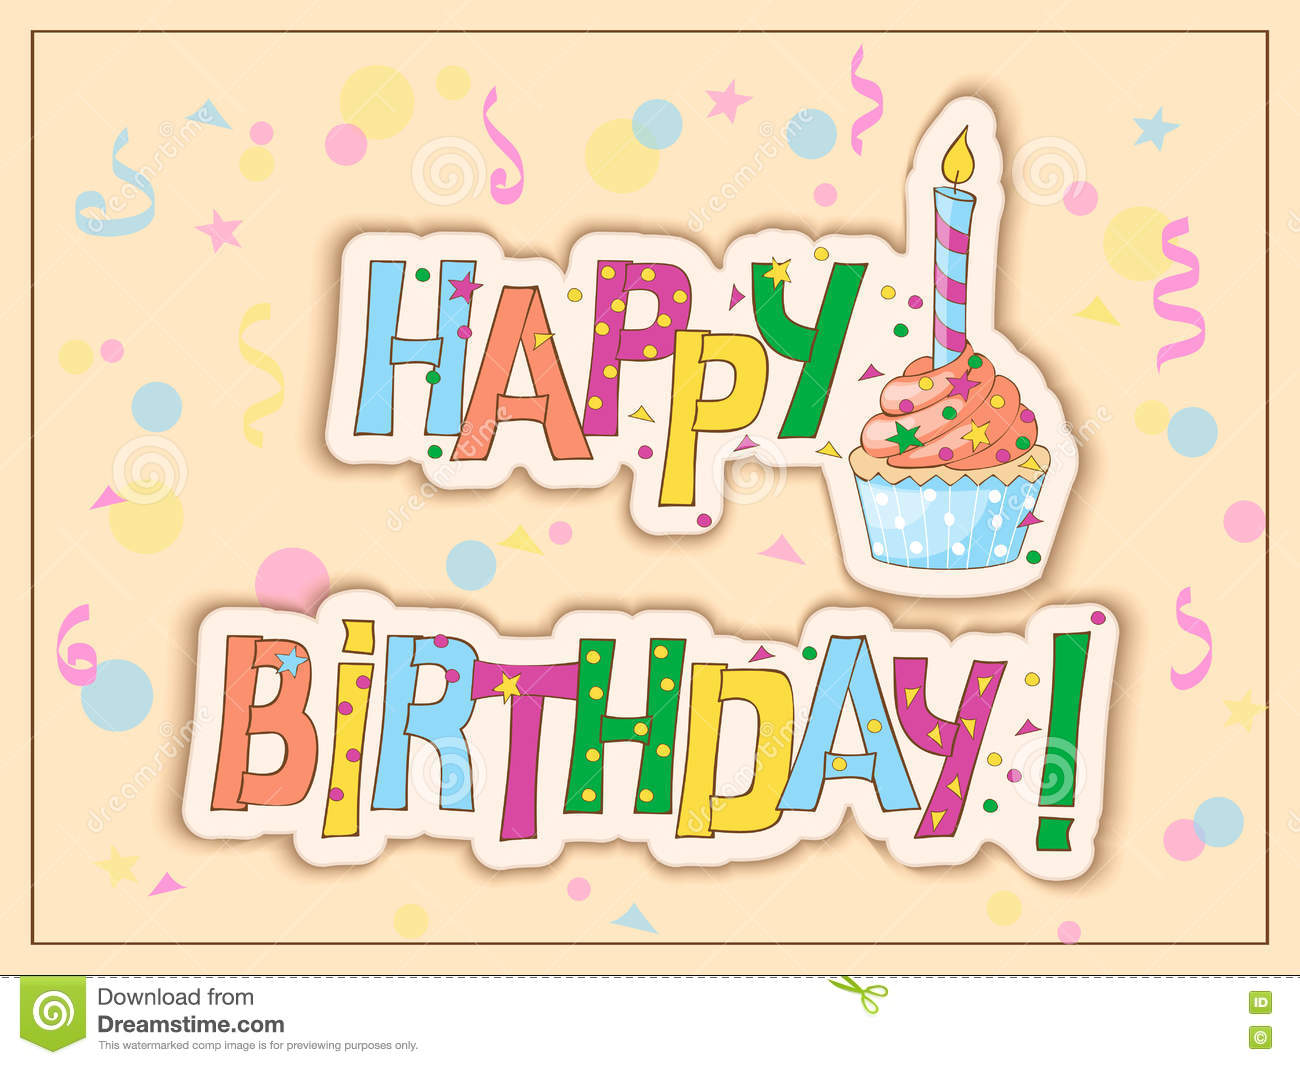 Birthday Card With Cake Candle And Hand Draw Text Vector – How to Draw a Birthday Card